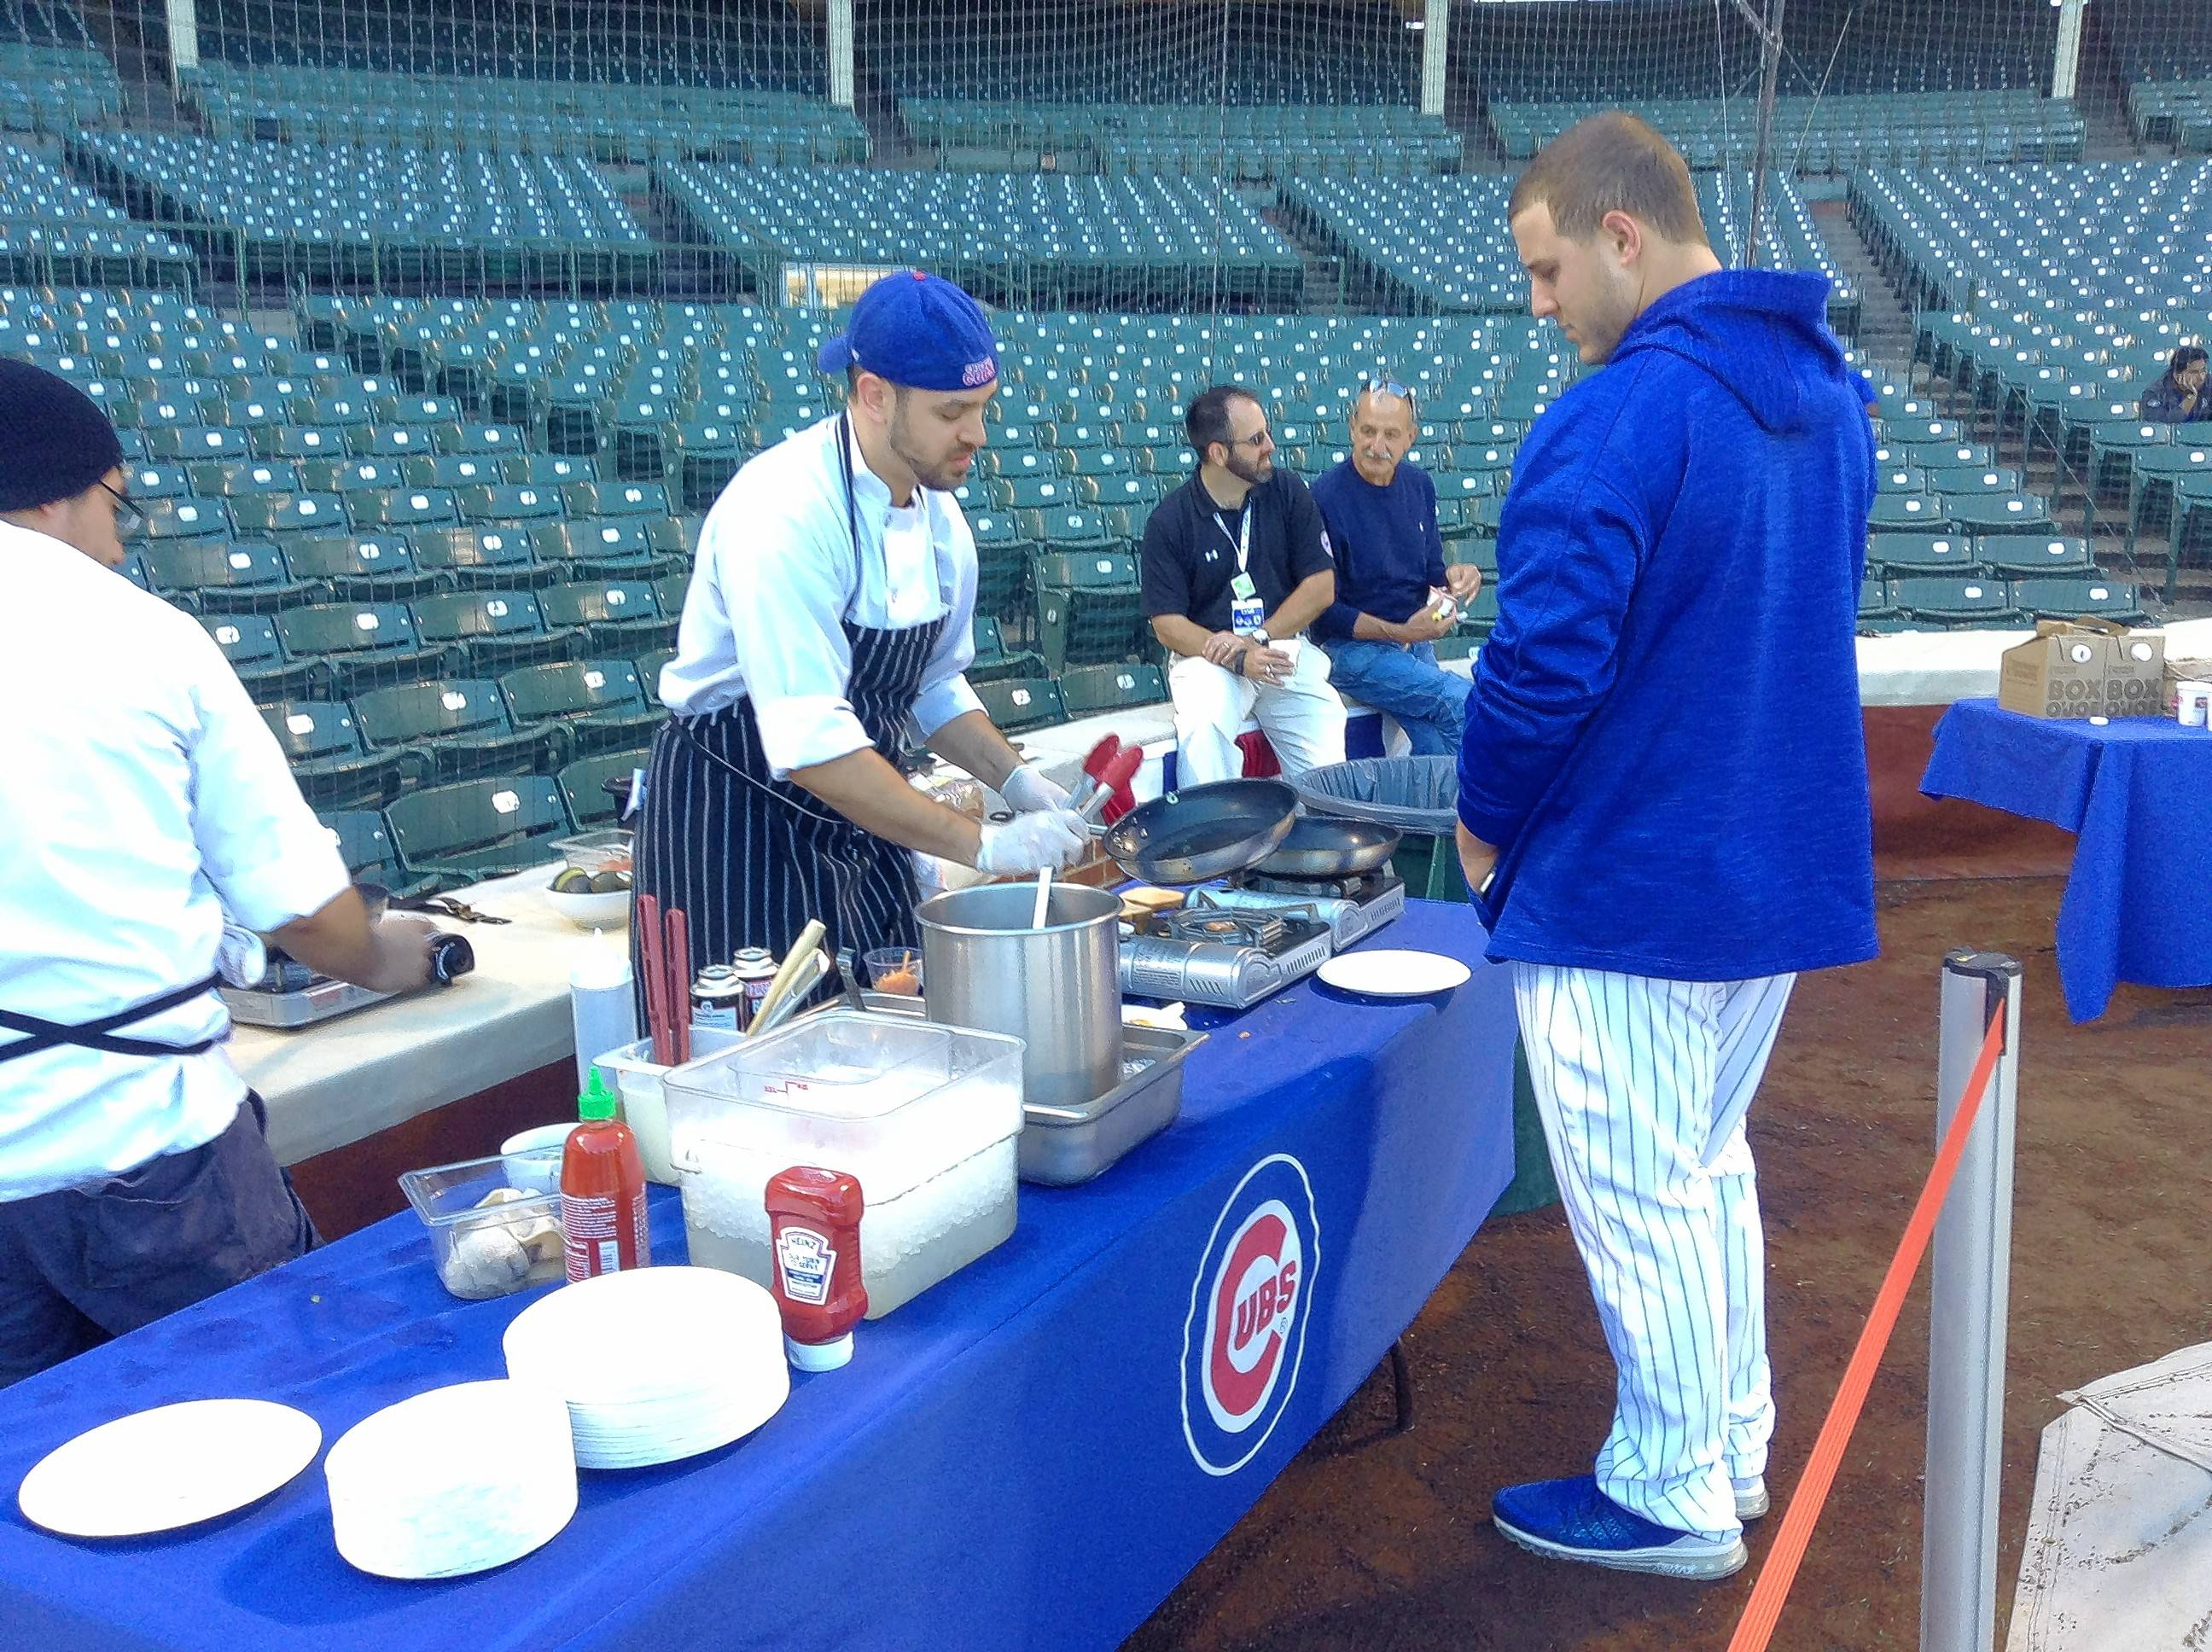 Cubs first baseman Anthony Rizzo waits for his breakfast Sunday morning at Wrigley Field.